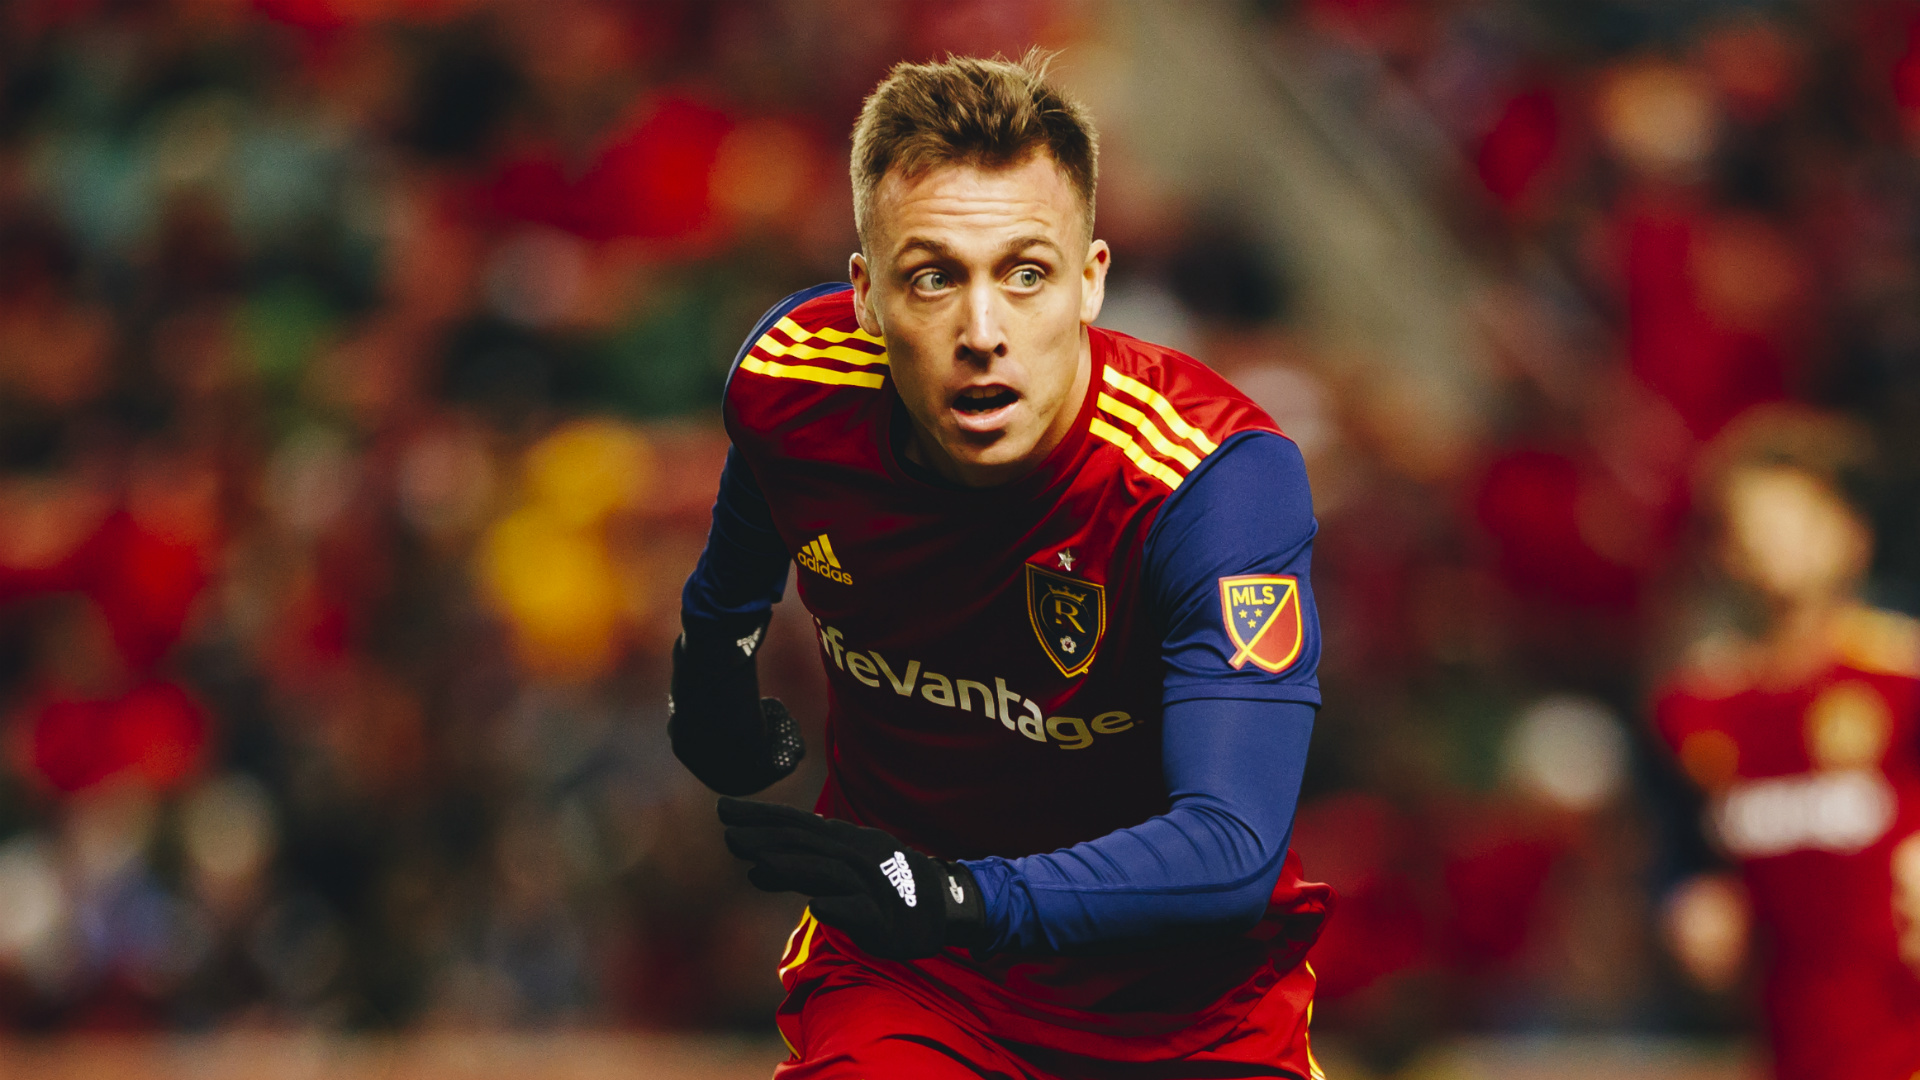 Real Salt Lake Schedule 2019 Real Salt Lake 2019 season preview: Roster, projected lineup